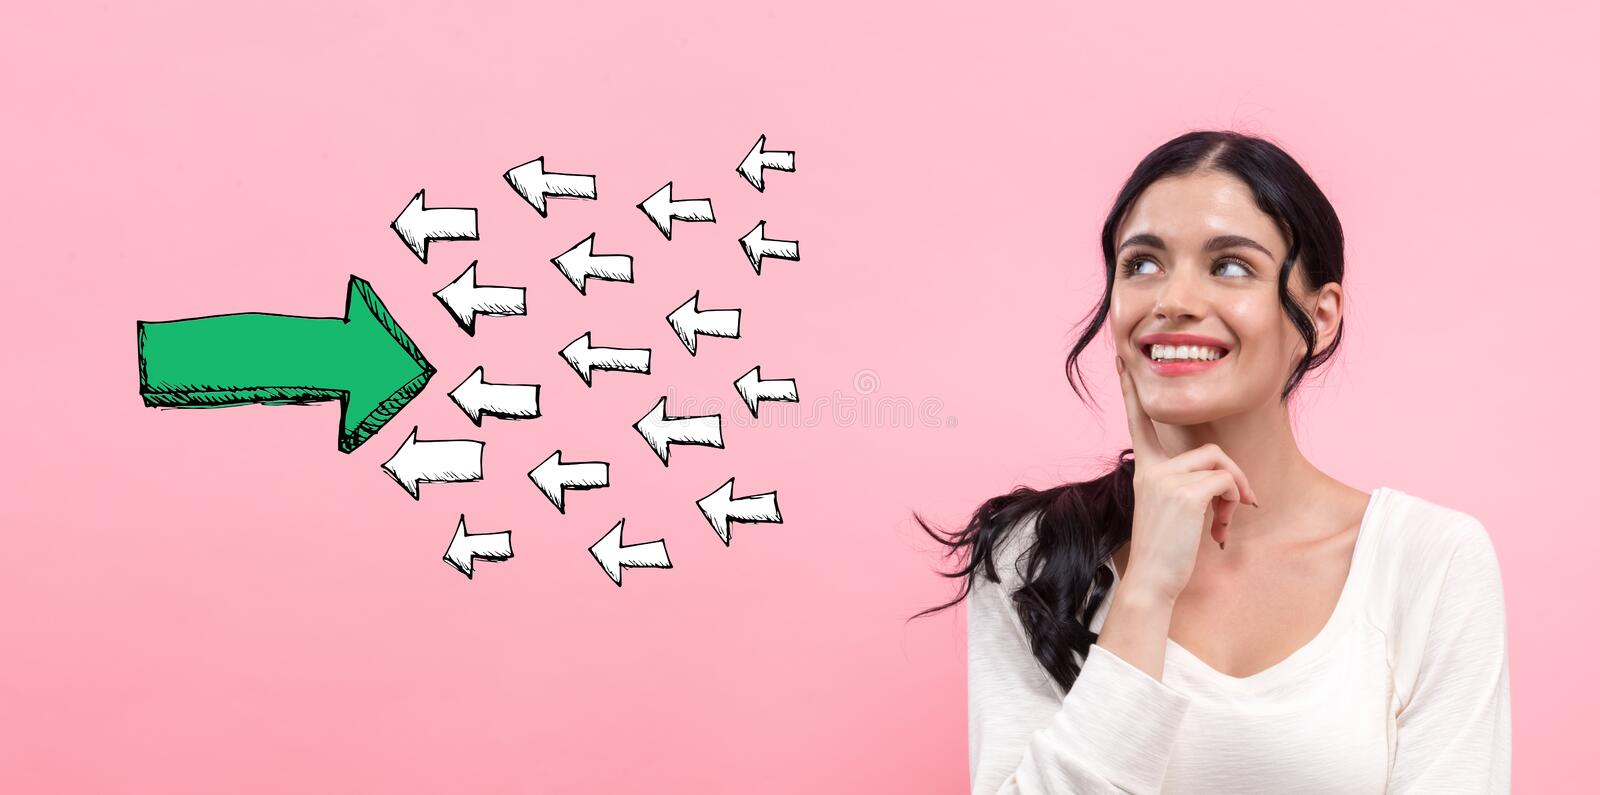 Arrow going in the opposite direction with young woman royalty free stock photo